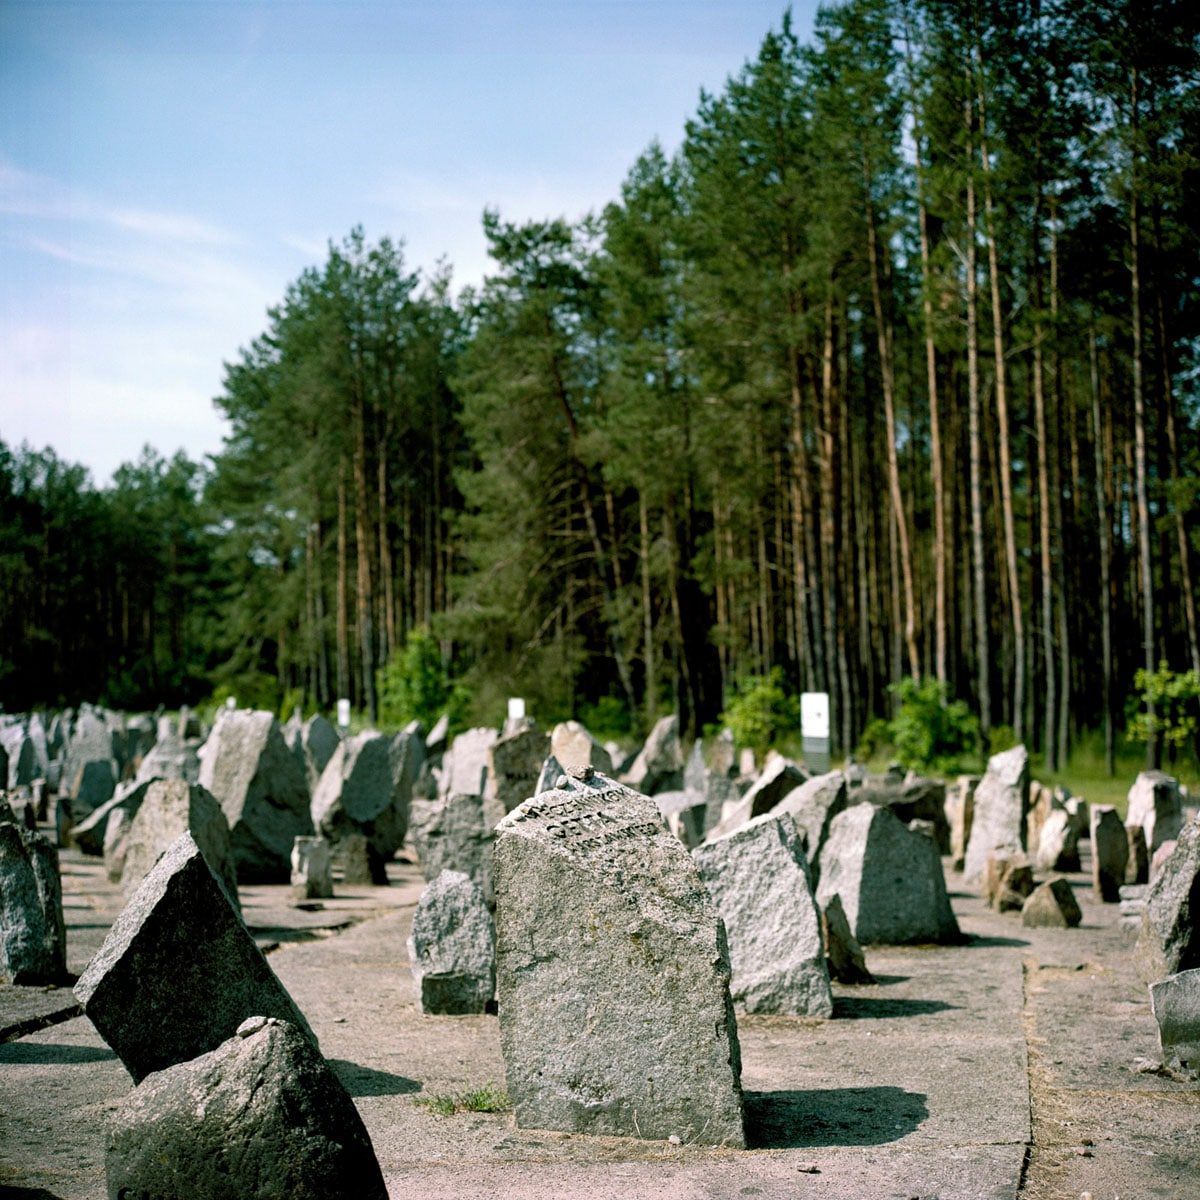 Poland, Treblinka, 01-06-2011 Treblinka was a Nazi German extermination camp in occupied Poland during World War II, near the village of Treblinka in the modern-day Masovian Voivodeship of Poland. Between July 22, 1942 and October 19, 1943, around 900.000 people were killed there. Treblinka is de naam van twee concentratiekampen: Treblinka I, een werkkamp en Treblinka II, een vernietigingskamp die respectievelijk in 1941 en 1942 gebouwd werden nabij het Poolse dorp Treblinka in het noordoosten van Polen. Er werden 900.000 mensen vermoord. PHOTO AND COPYRIGHT ROGER CREMERS